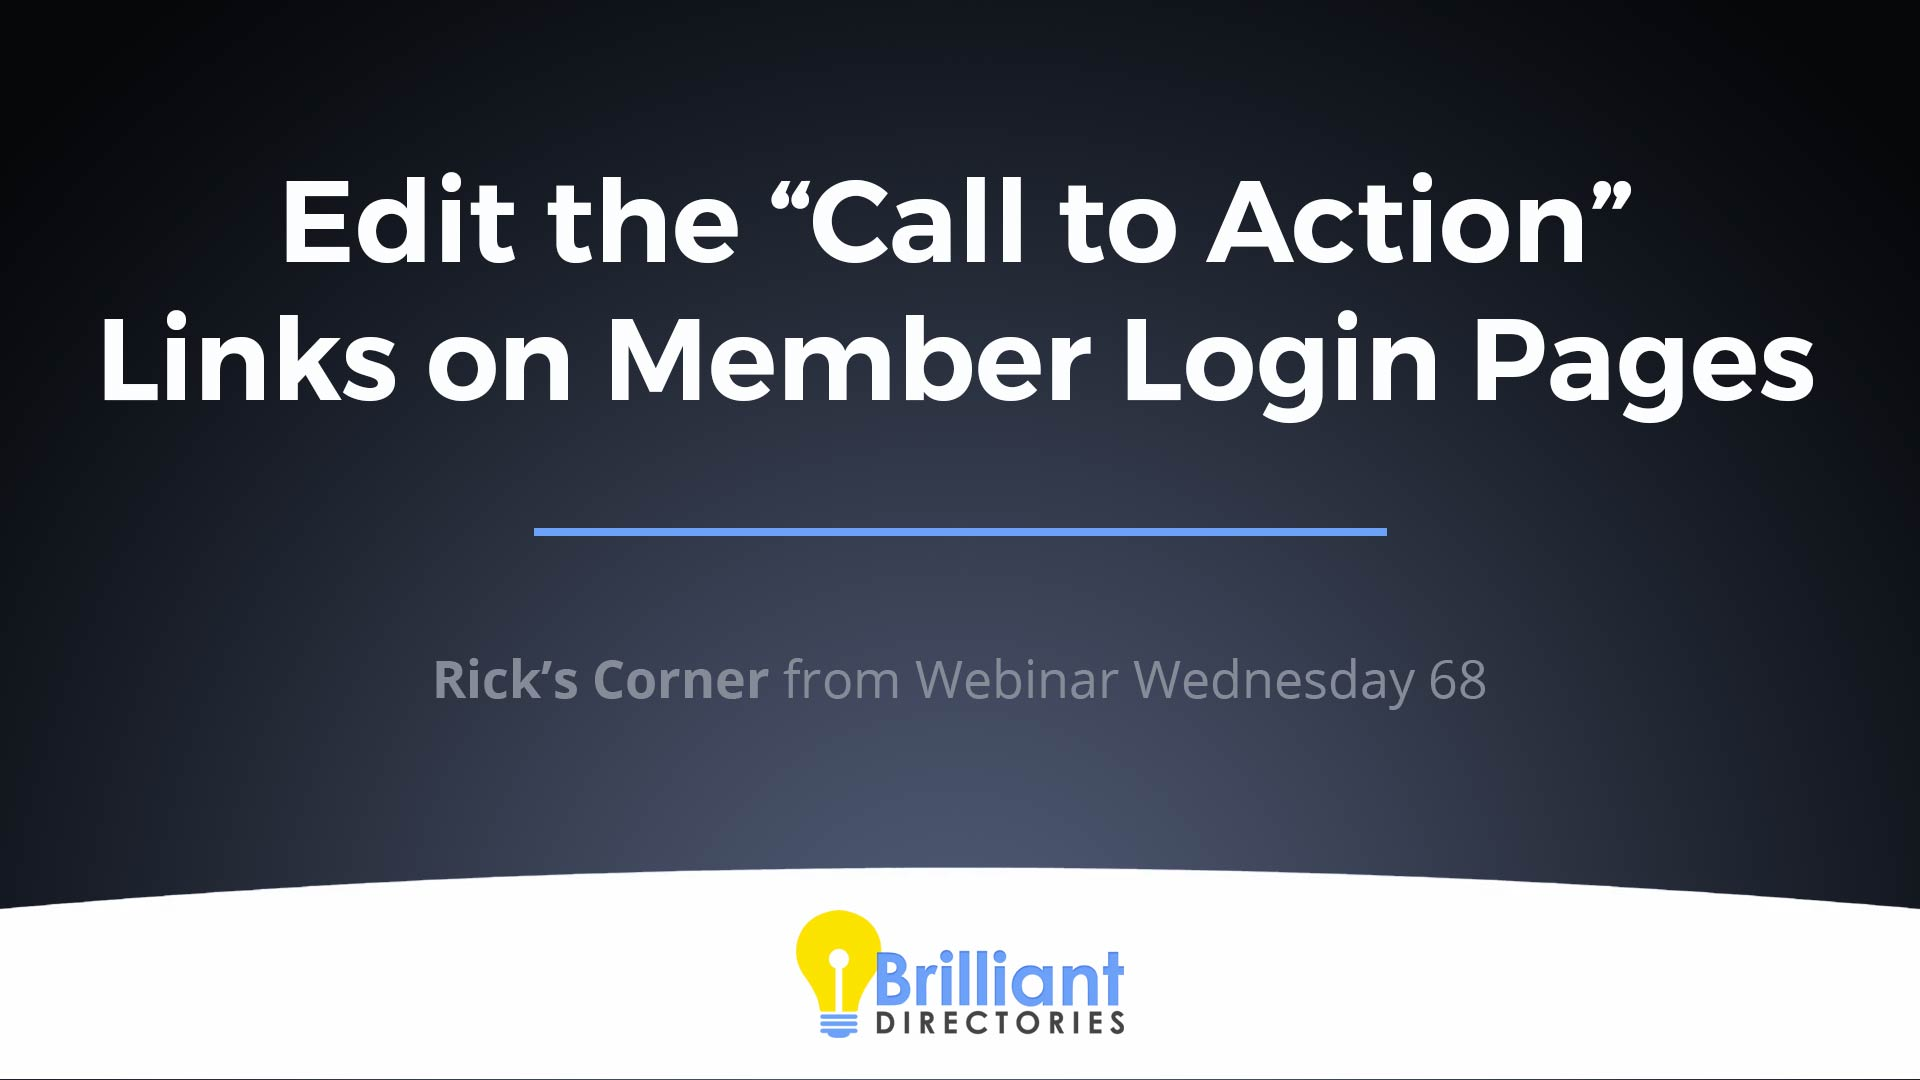 https://www.brilliantdirectories.com/blog/edit-the-additional-call-to-action-links-on-member-login-pages